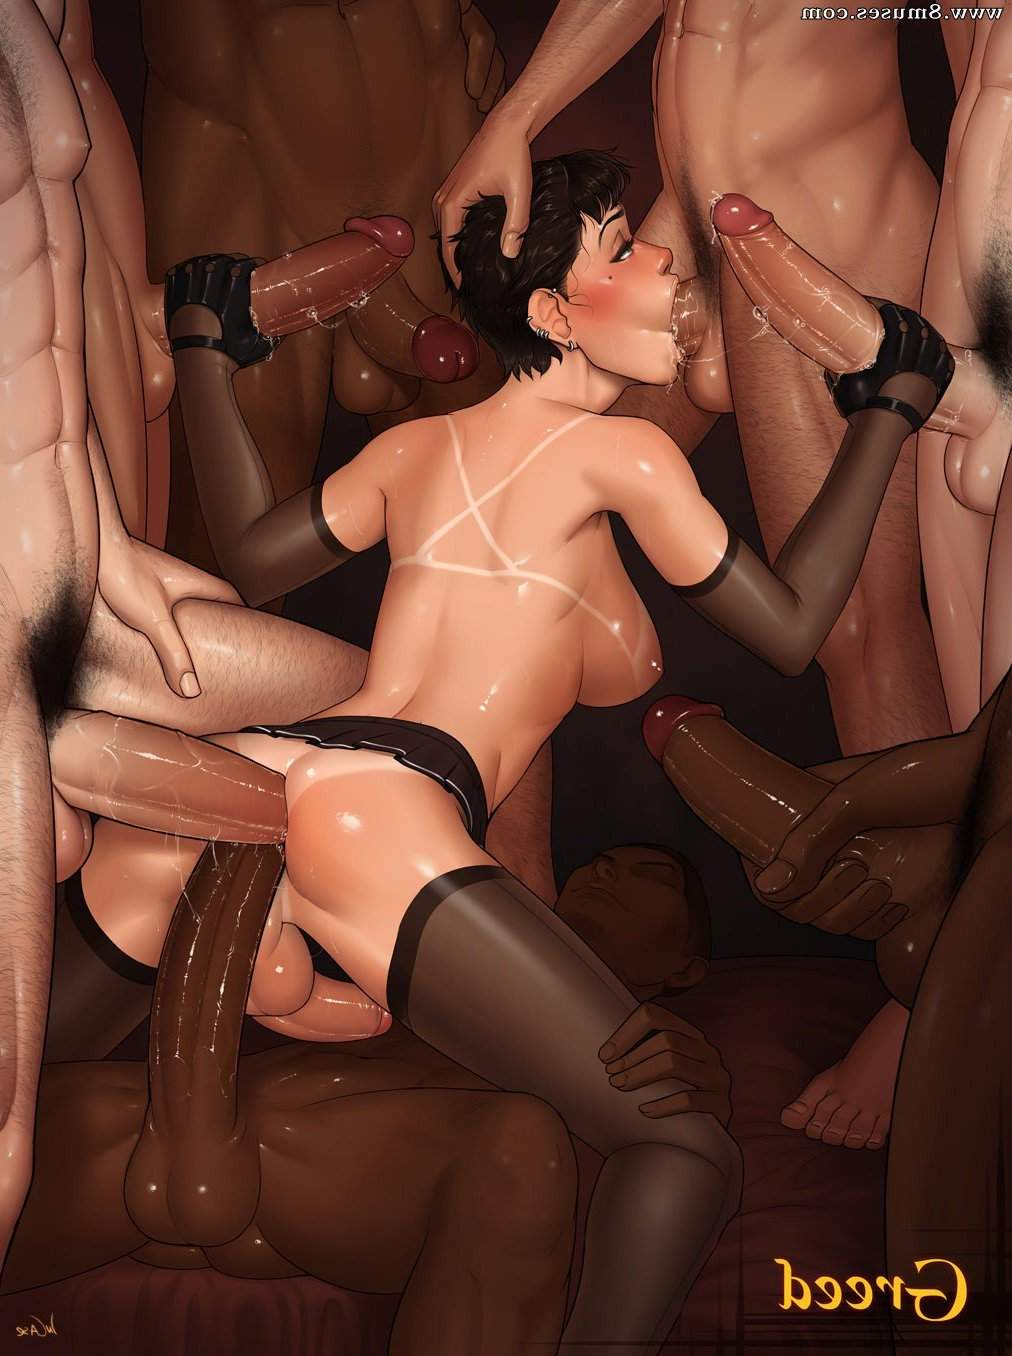 Incase-Comics/Artwork Artwork__8muses_-_Sex_and_Porn_Comics_226.jpg